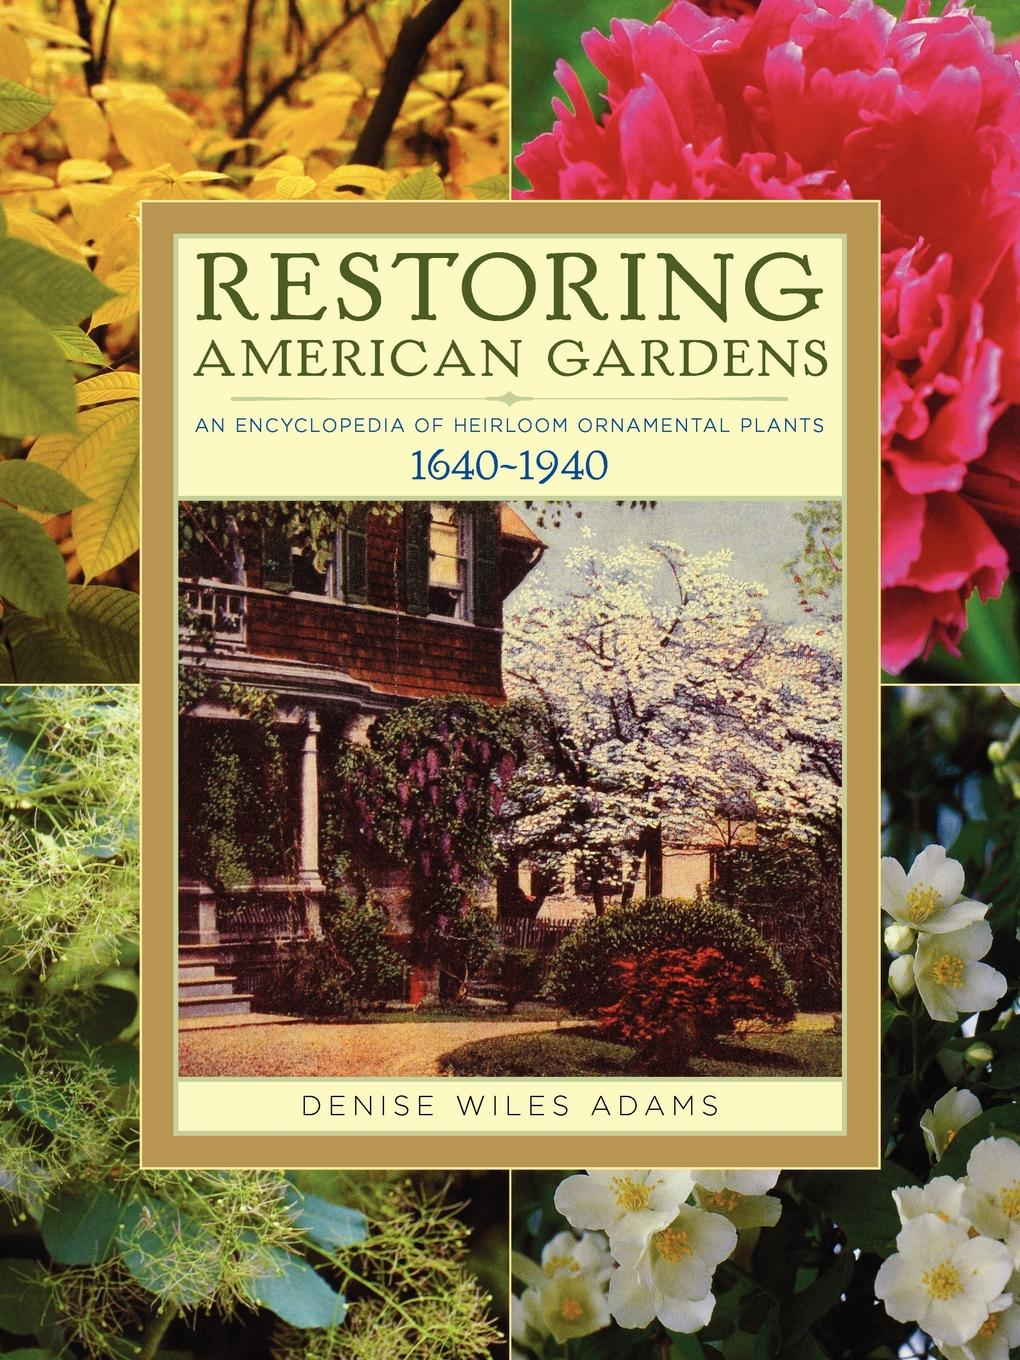 Denise Wiles Adams Restoring American Gardens. An Encyclopedia of Heirloom Ornamental Plants, 1640-1940 золотые серьги ювелирное изделие 01c626895 купить